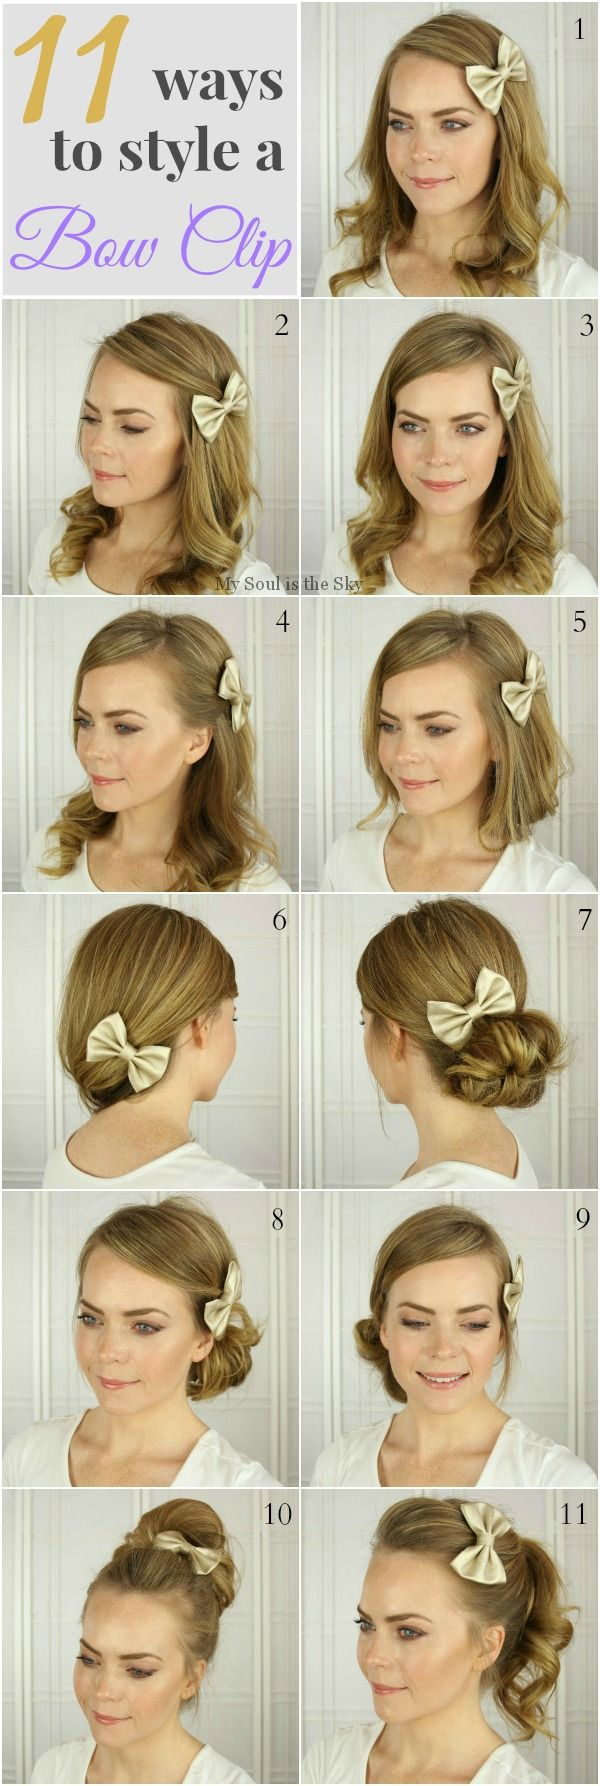 best 25+ hair bow hairstyles ideas only on pinterest | bow